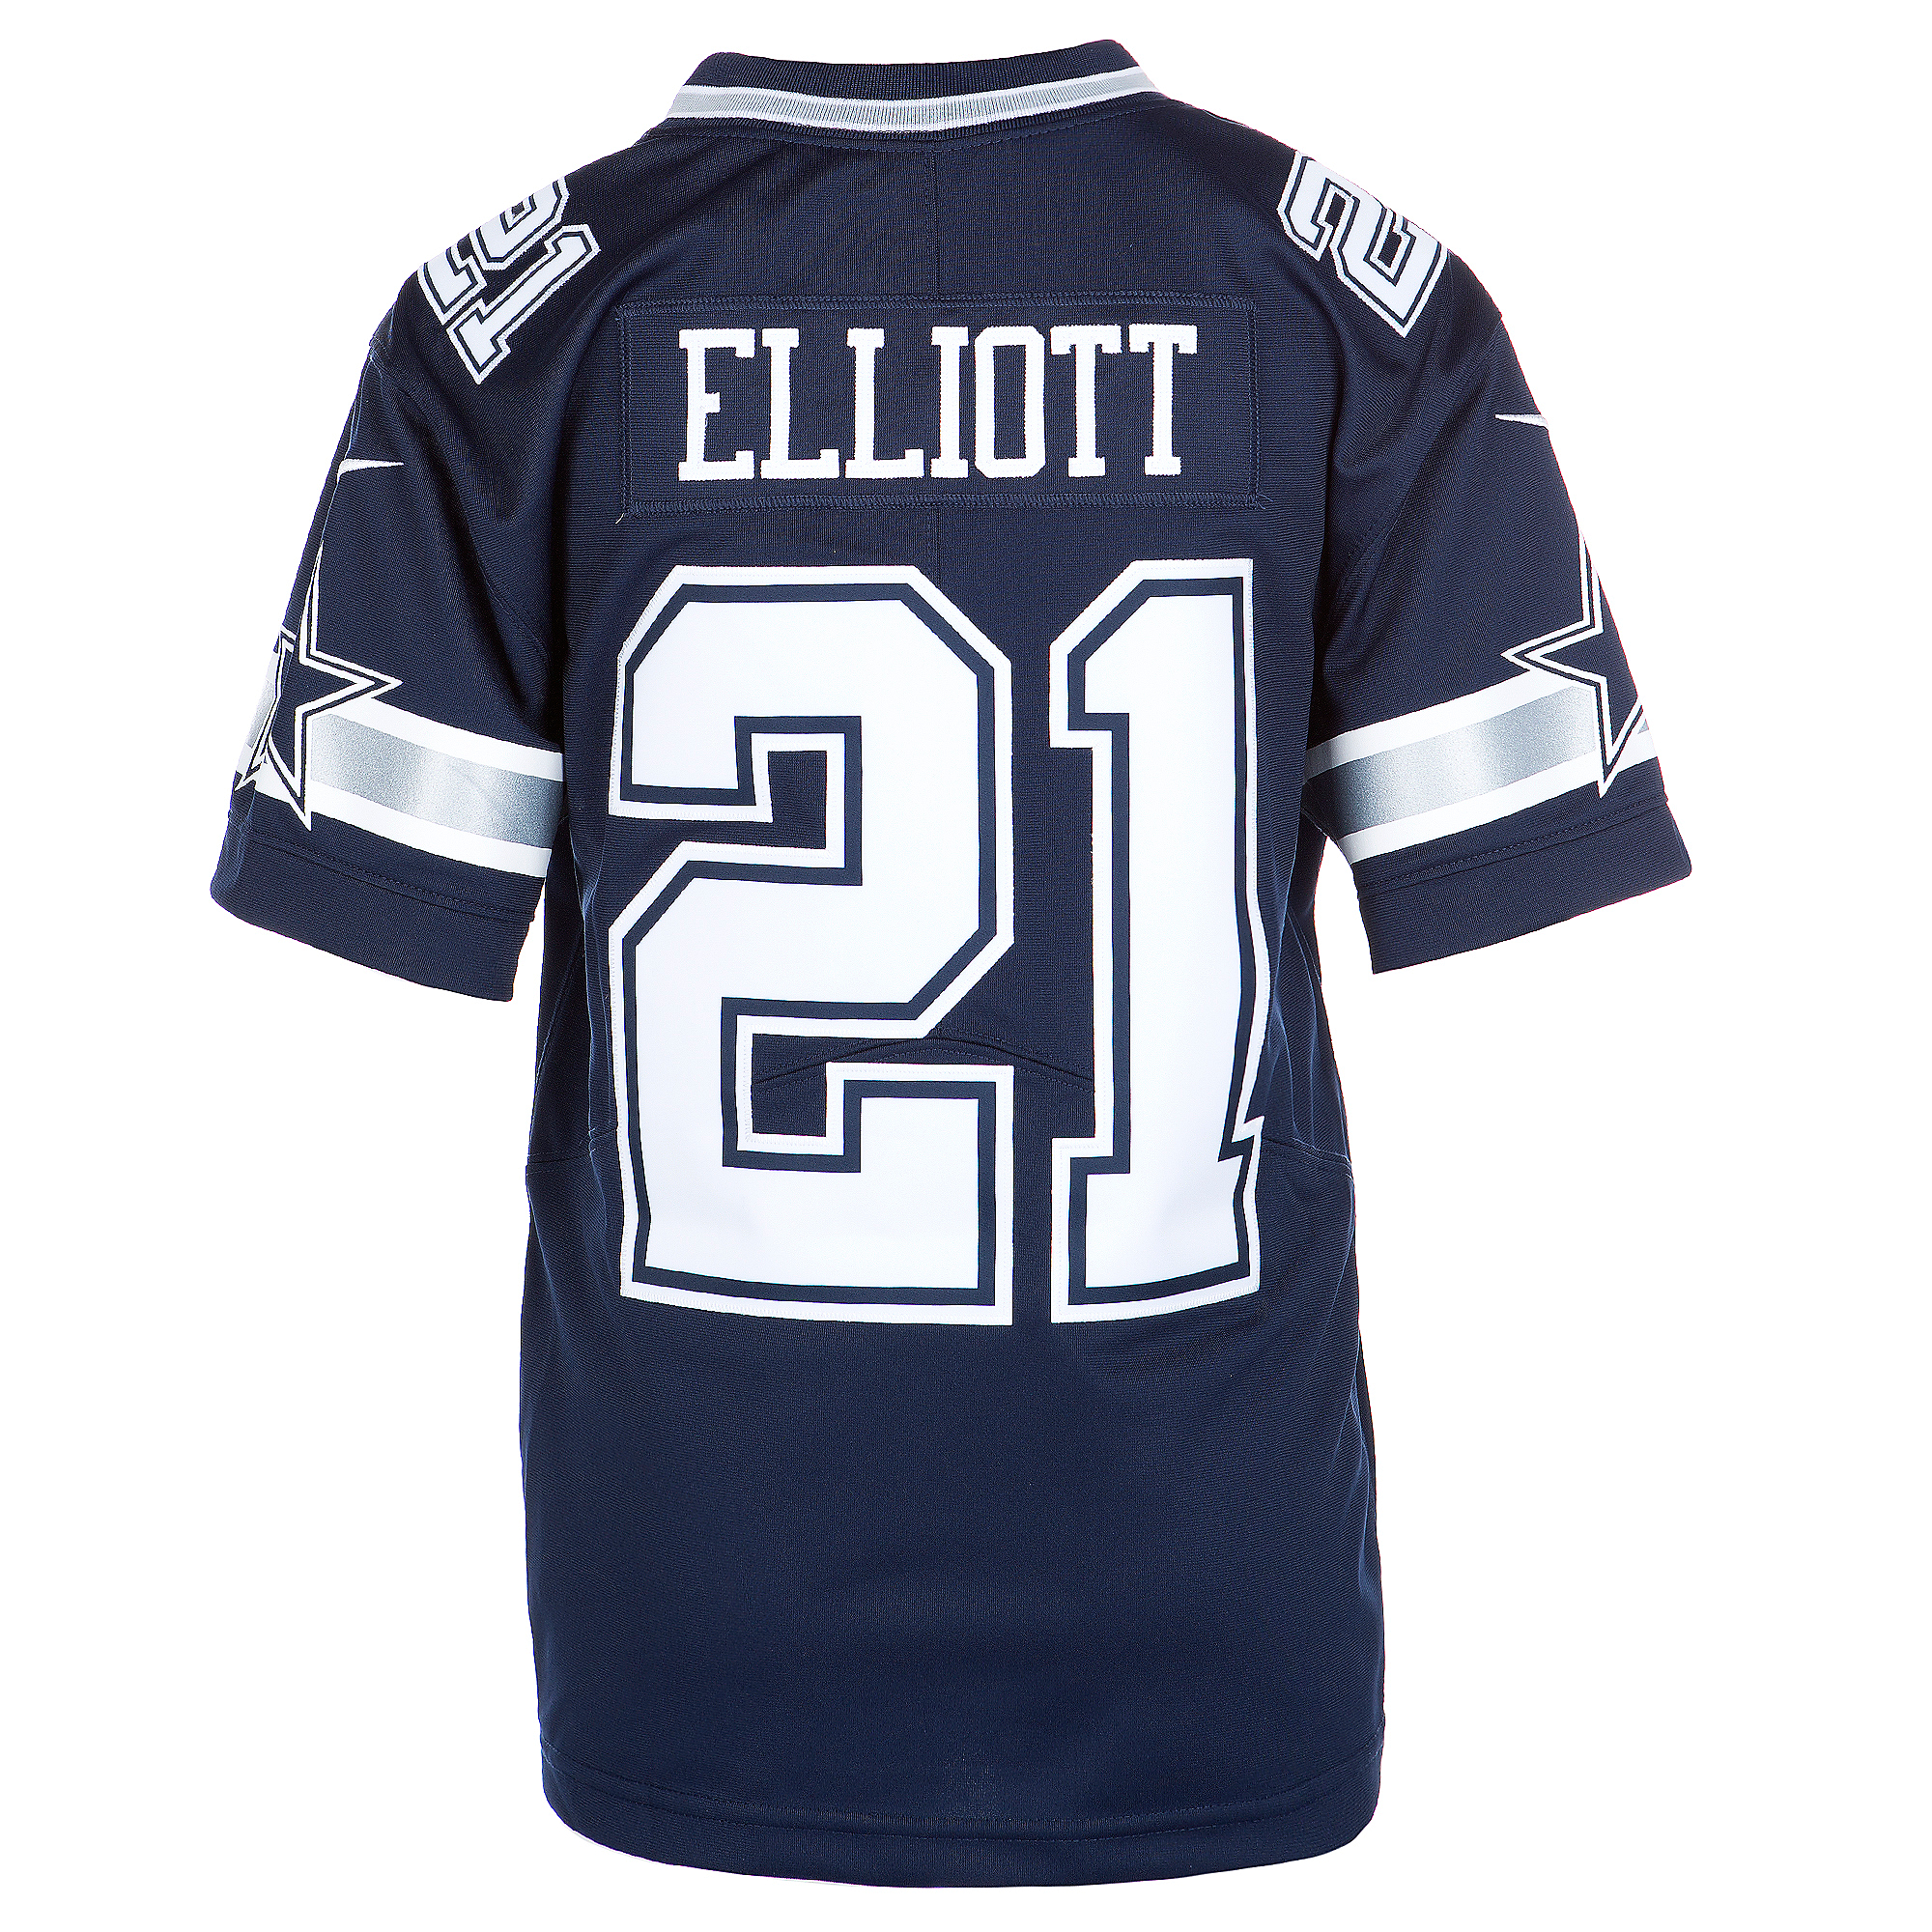 Dallas Cowboys Youth Ezekiel Elliott #21 Nike Limited Jersey